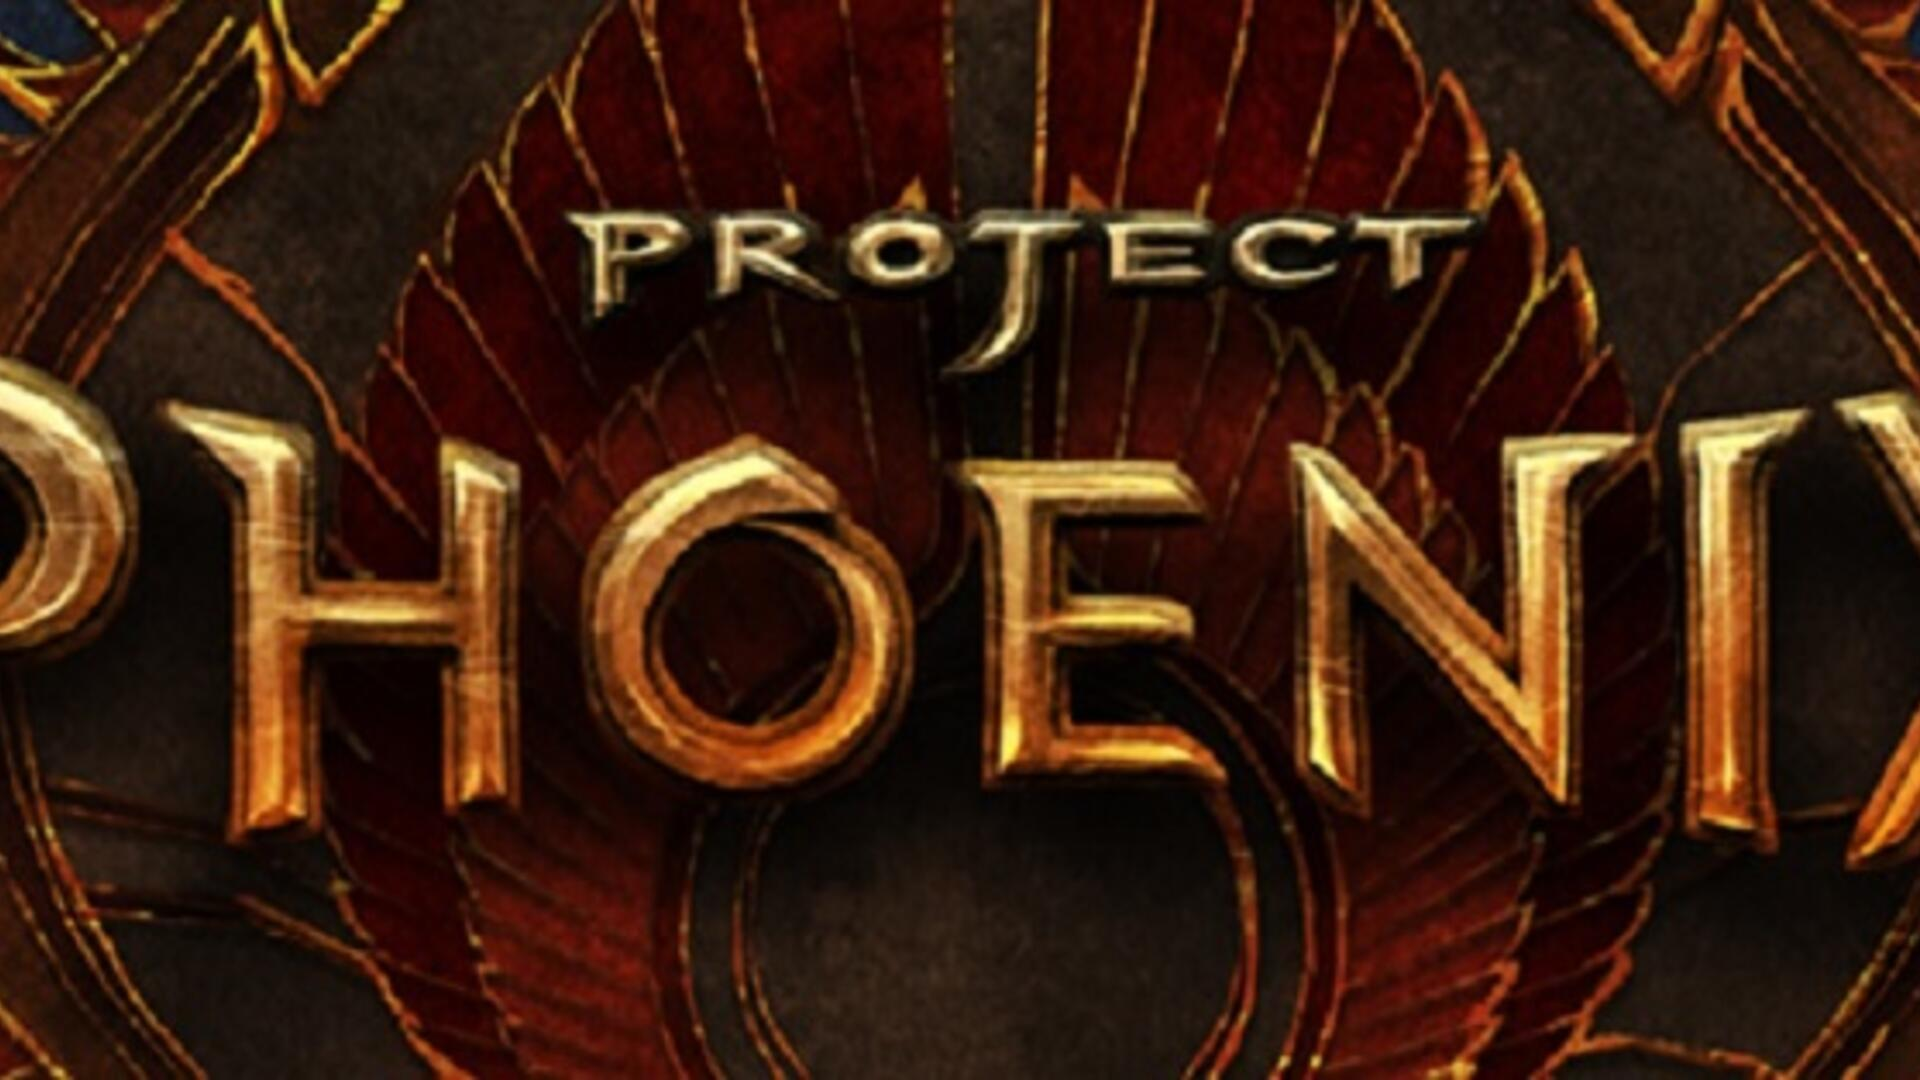 Project Phoenix Focuses on Story, Not Graphics or DLC